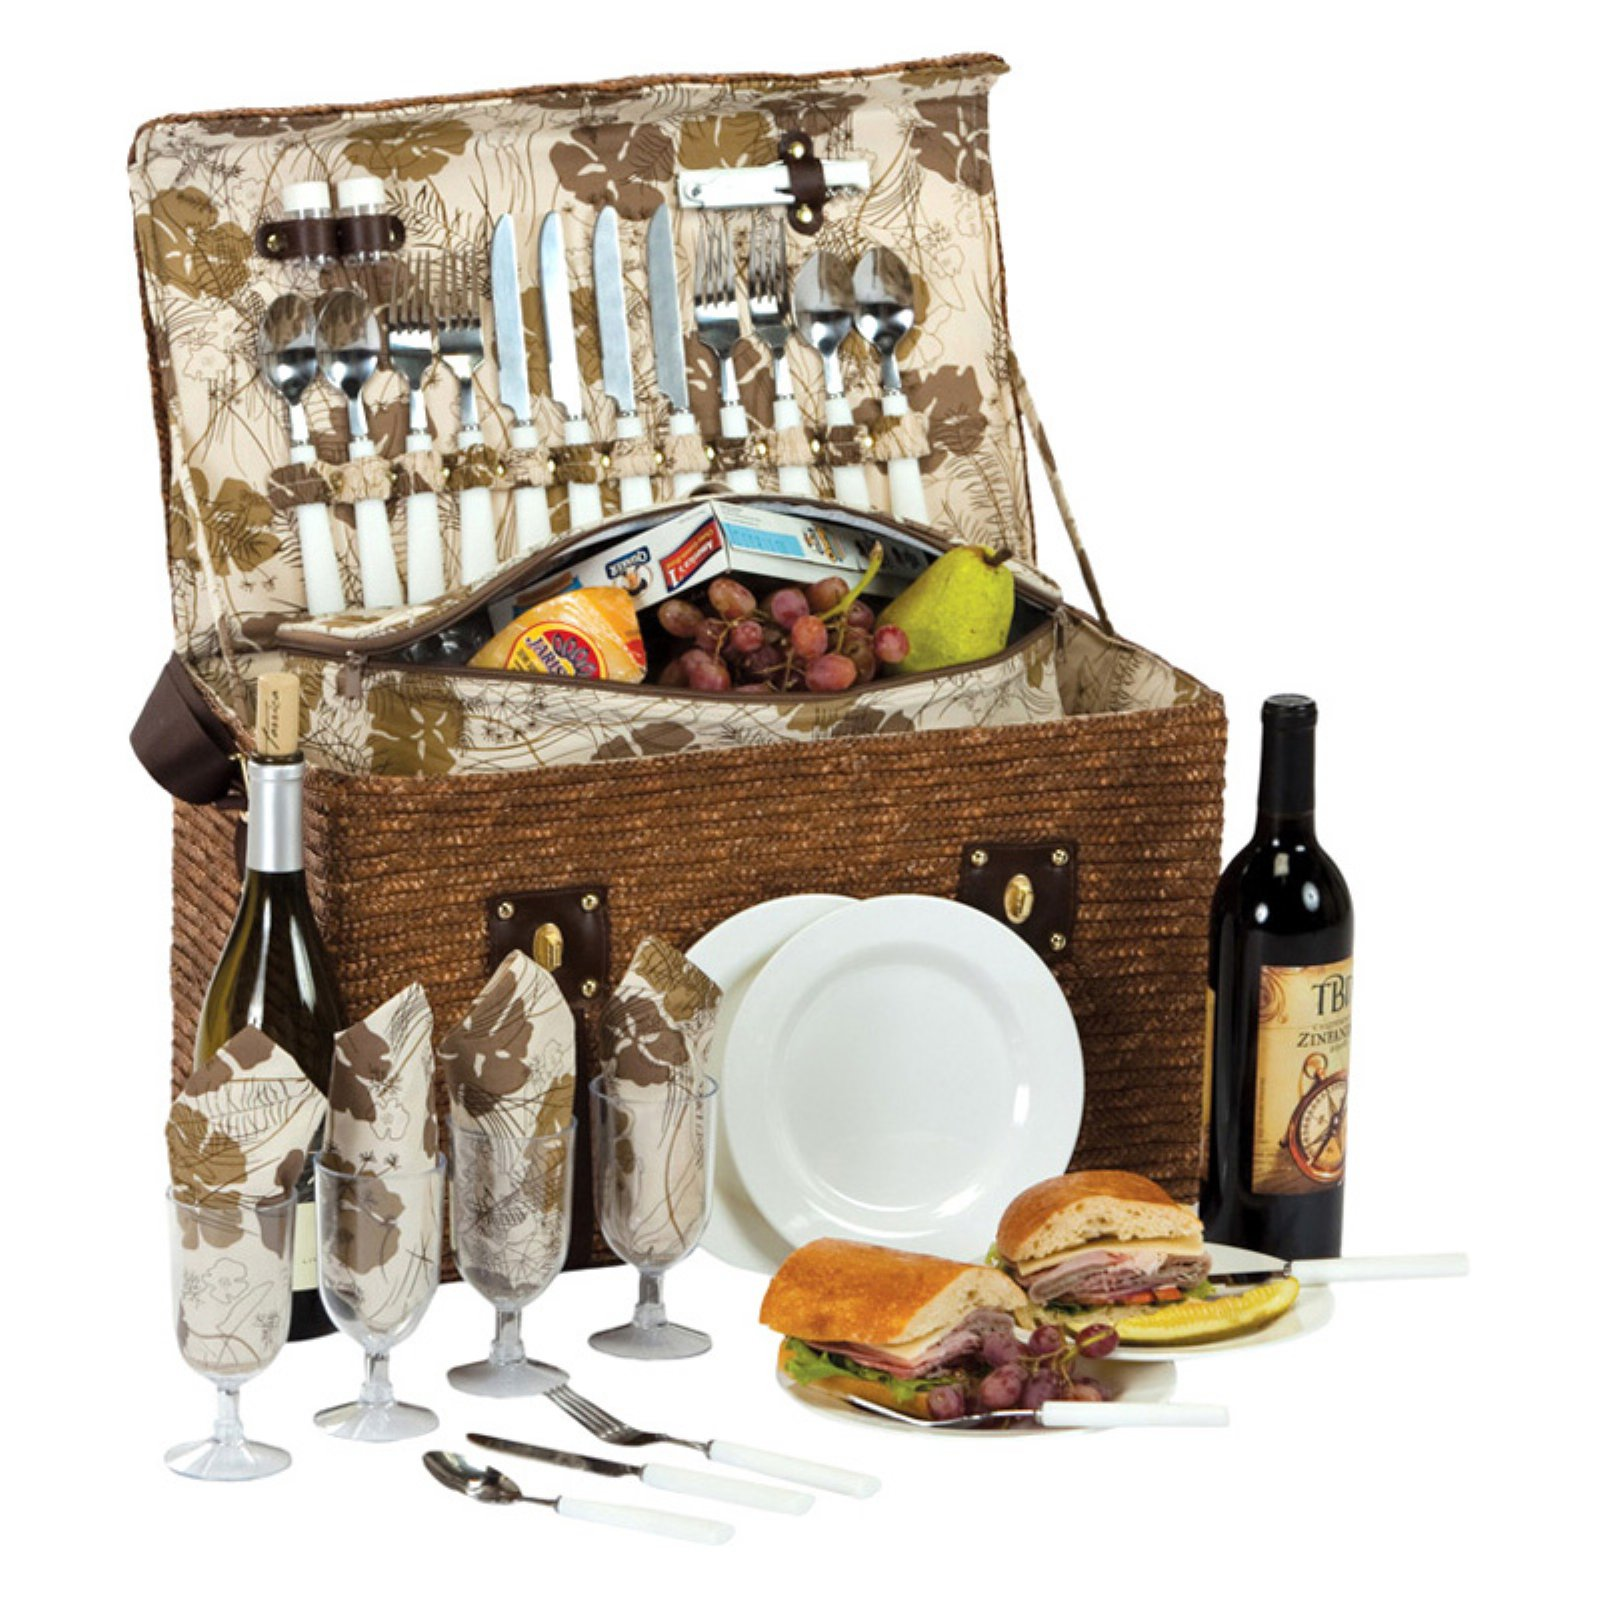 Picnic Plus Woodstock 4 Person Picnic Basket - Fern Lining